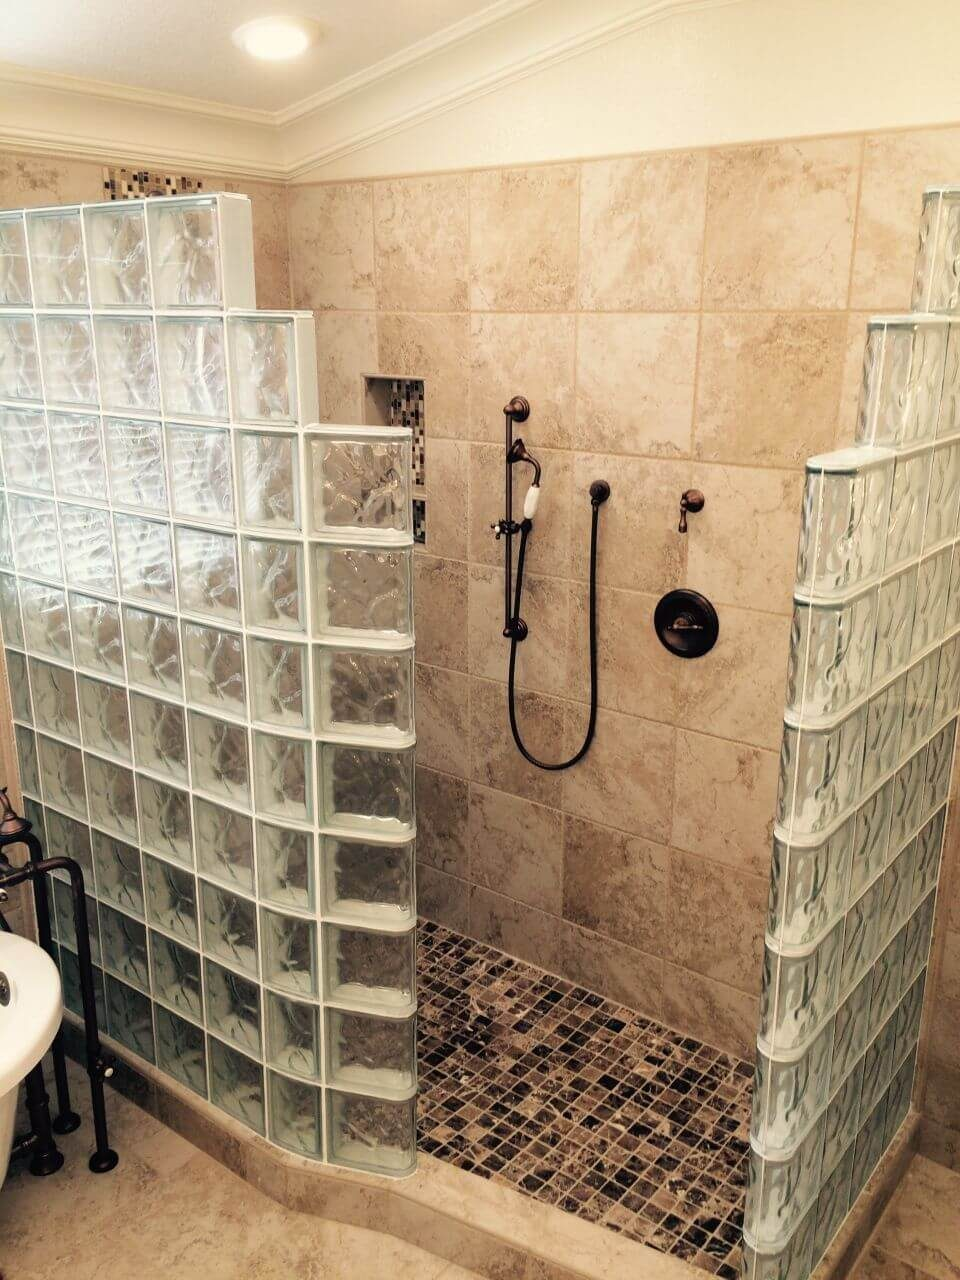 Glass Block Walls Provide Unique Walk In Shower Styling